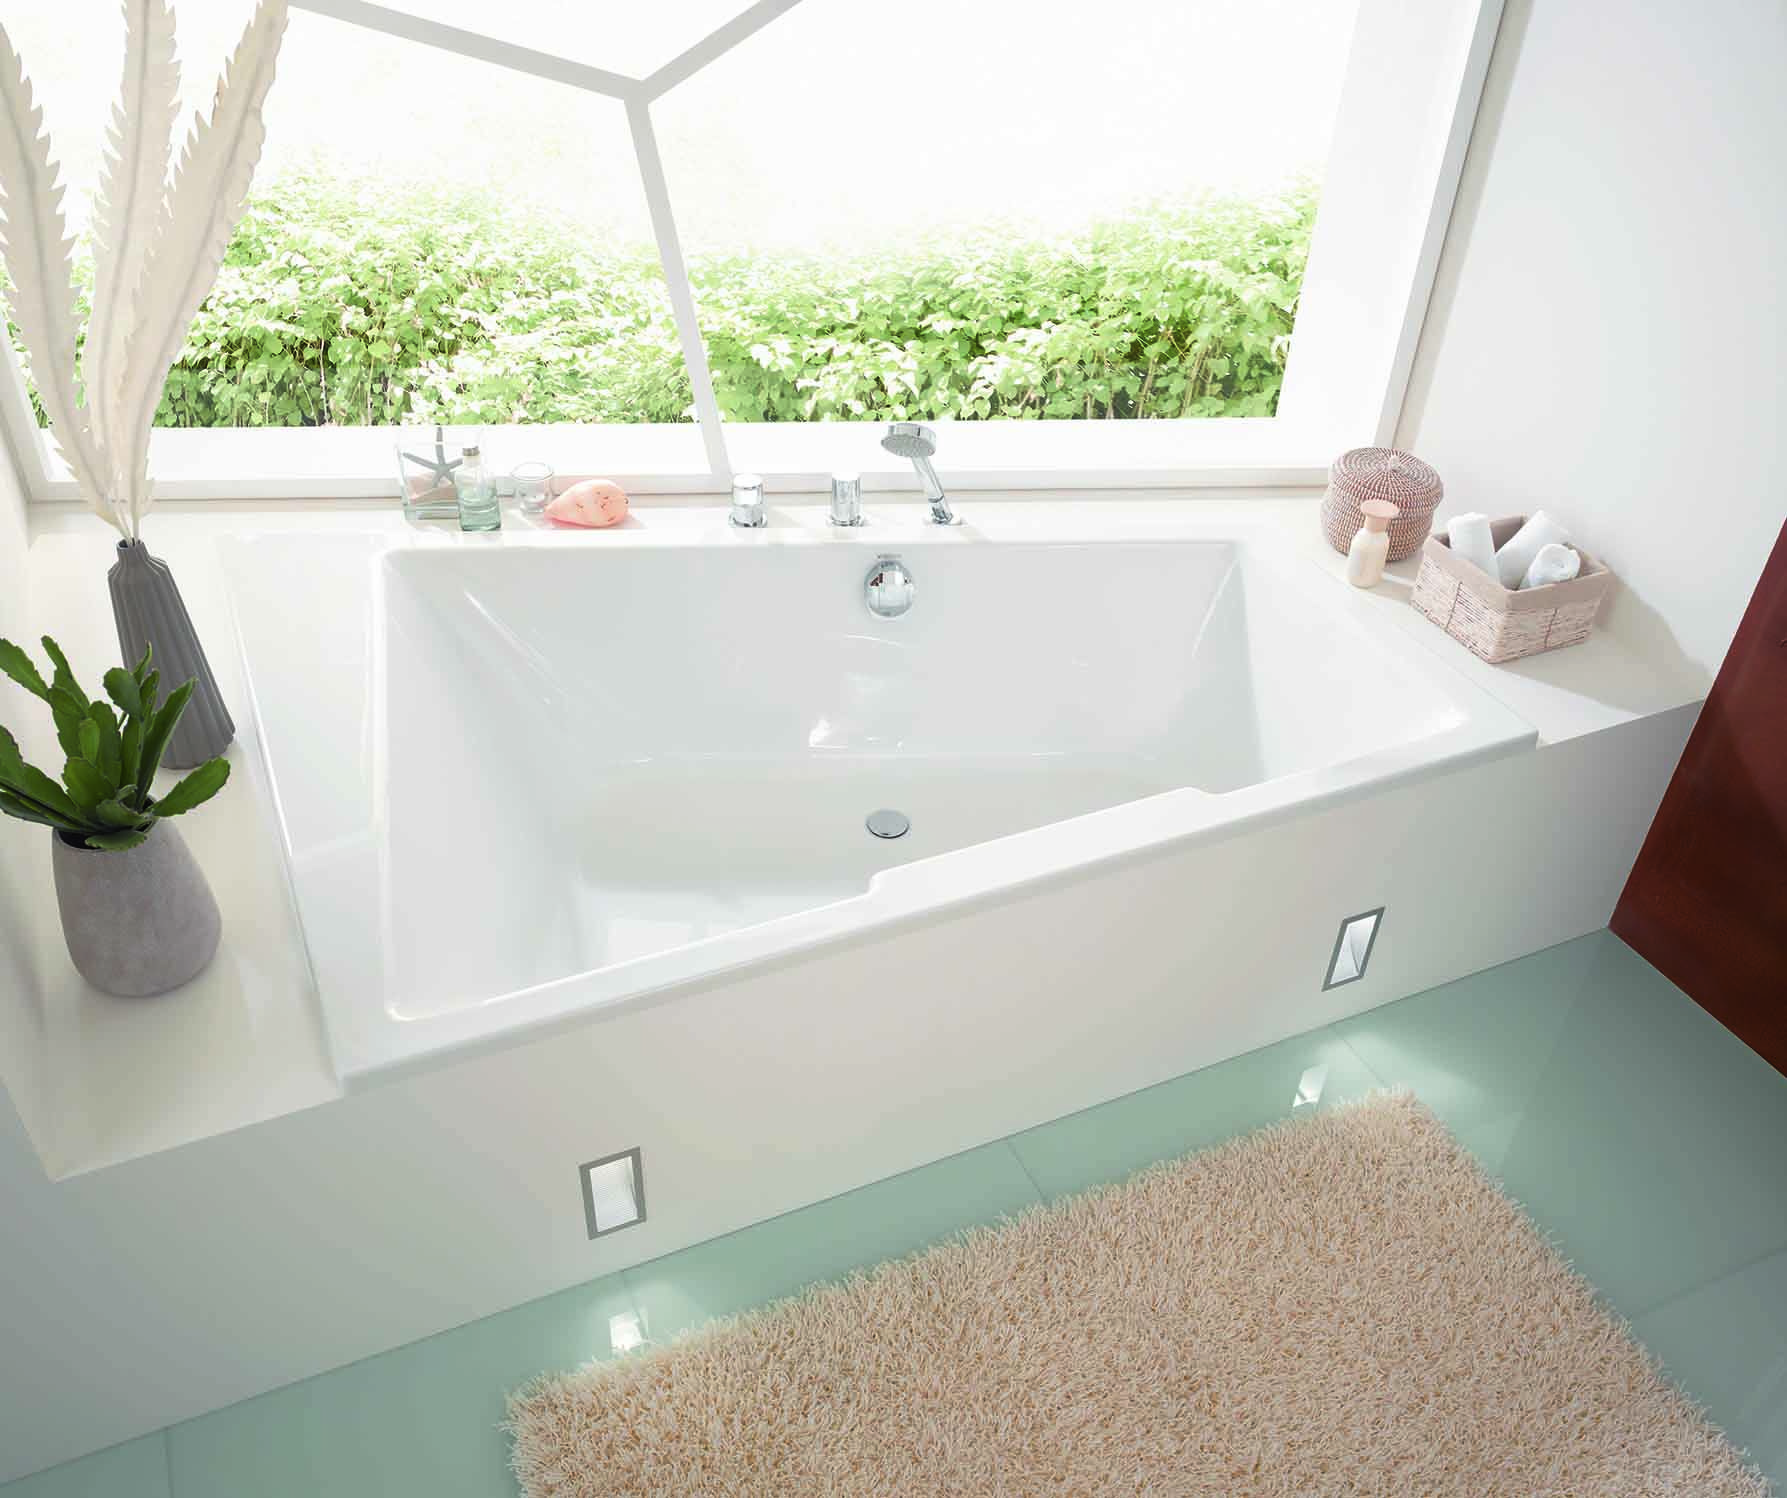 Vigour Derby Badewanne.Vigour Cosima Badewanne Interior Design Bathtub